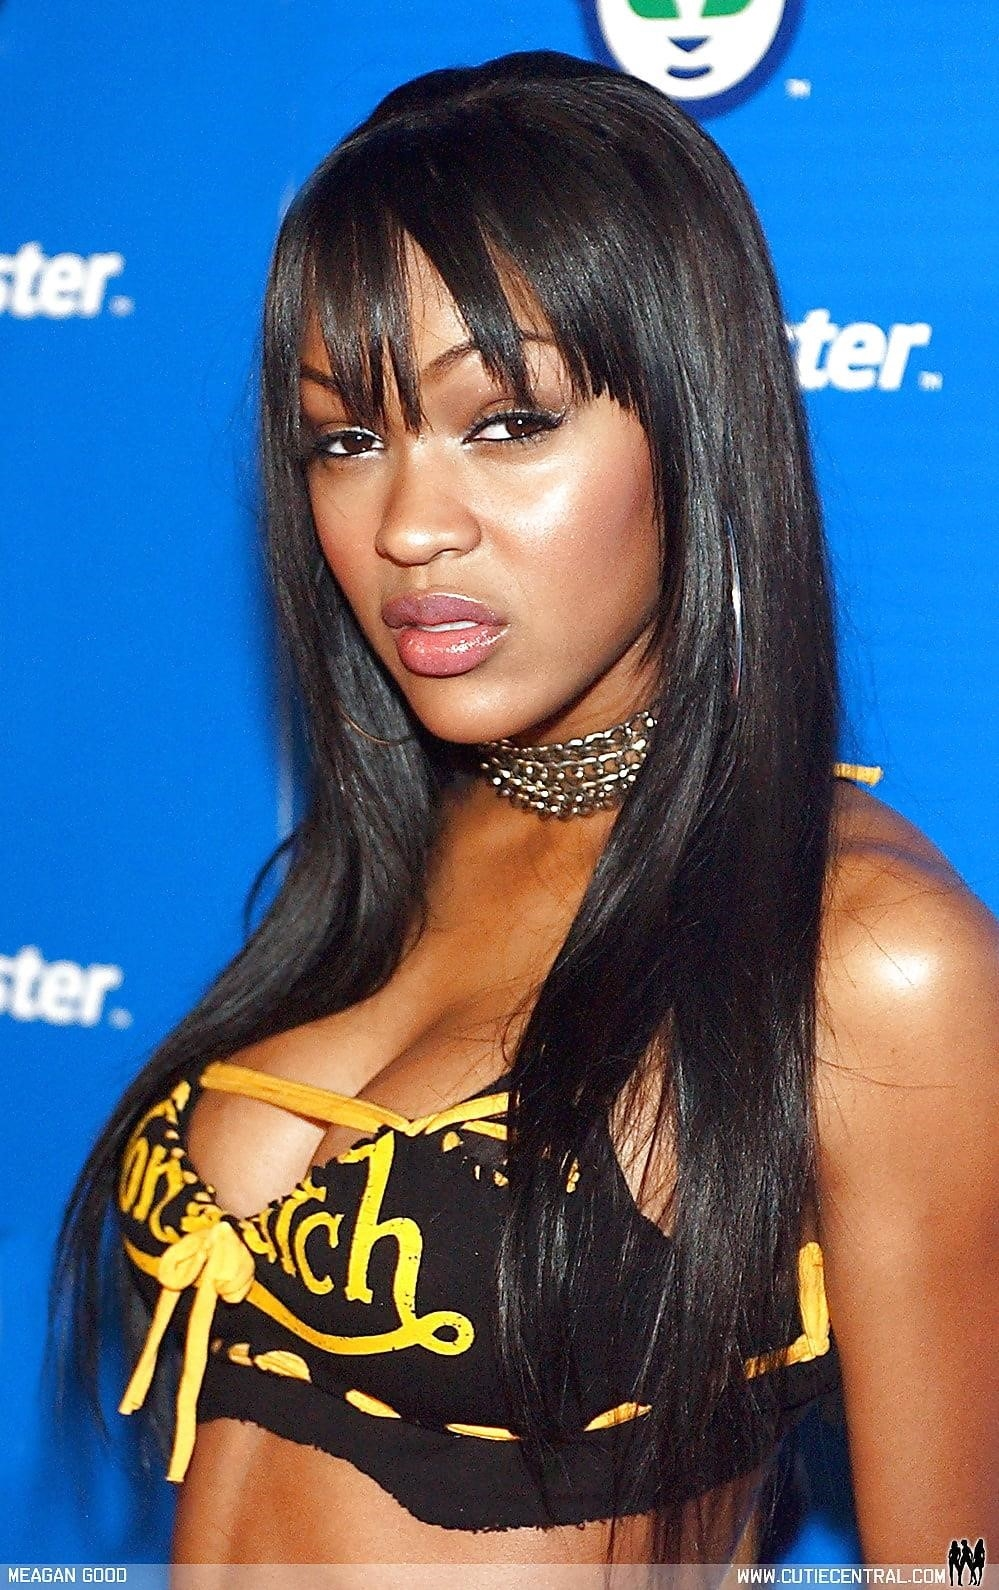 Meagan good nude pictures-5840